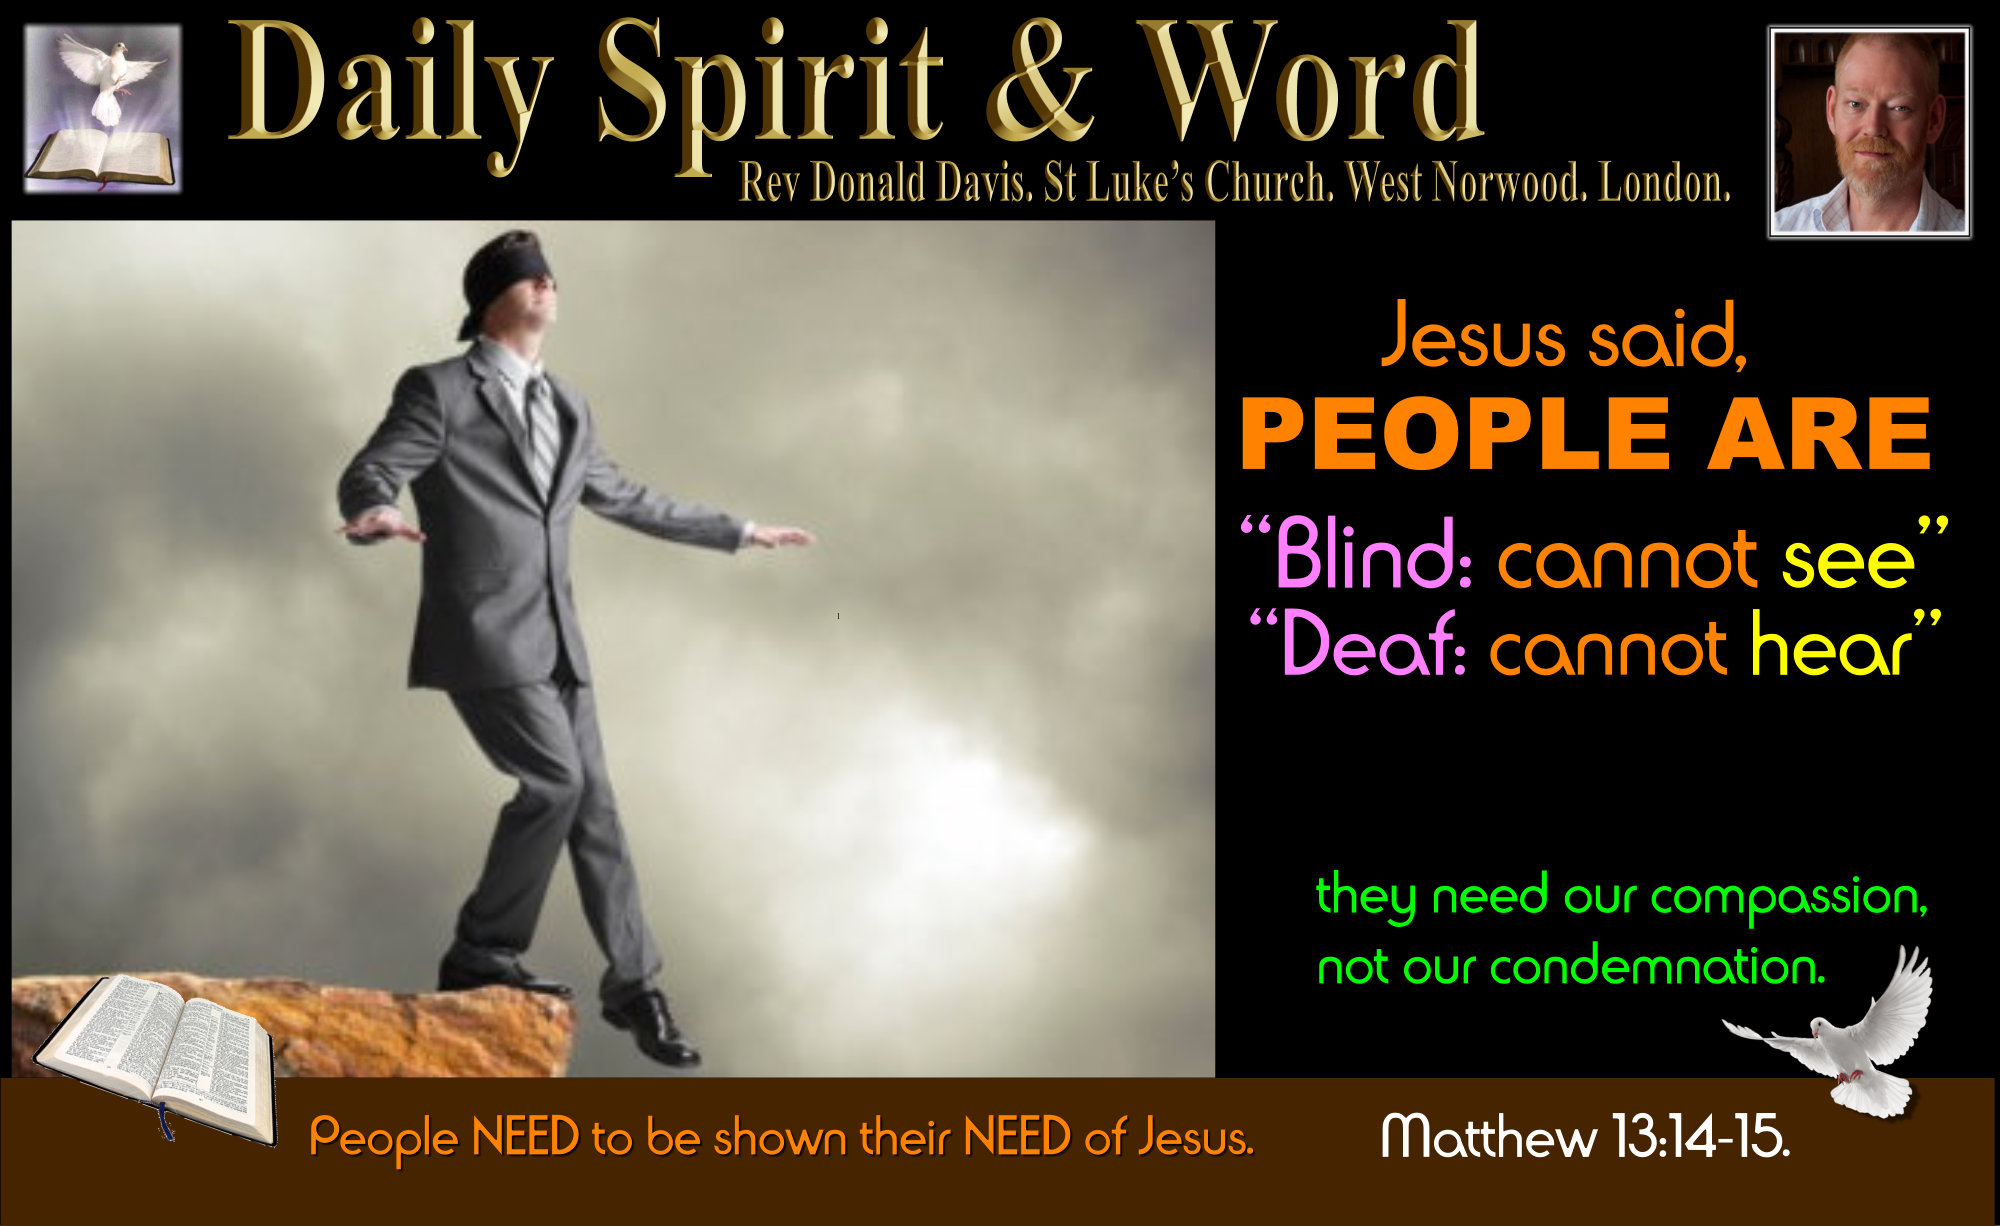 The Blind and Deaf need our Compassion and Kindness, a miracle so they can see and hear their NEED of Jesus Christ